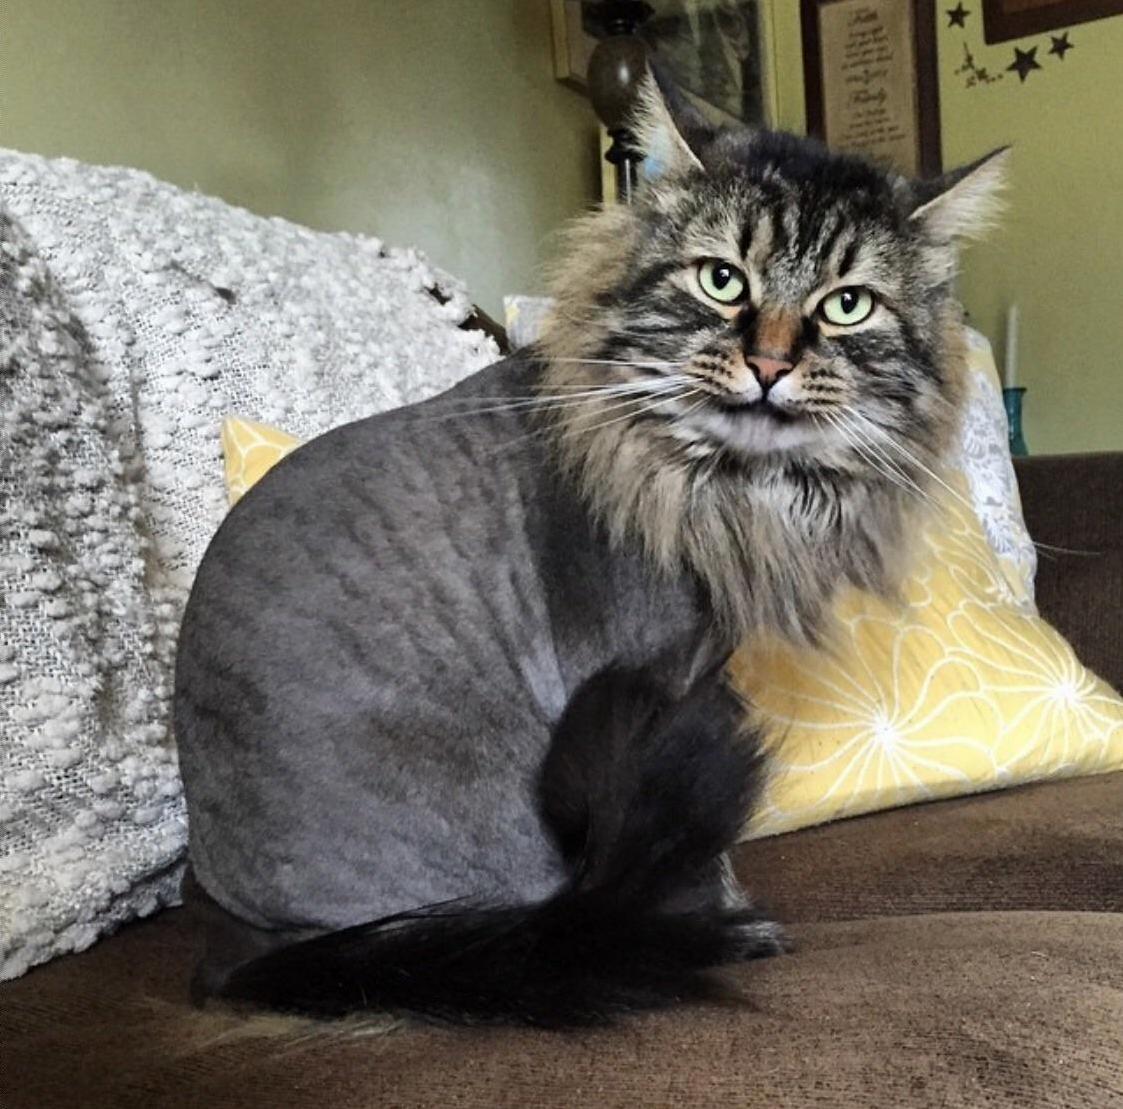 I look fresh with my new lion cut – can we say meow